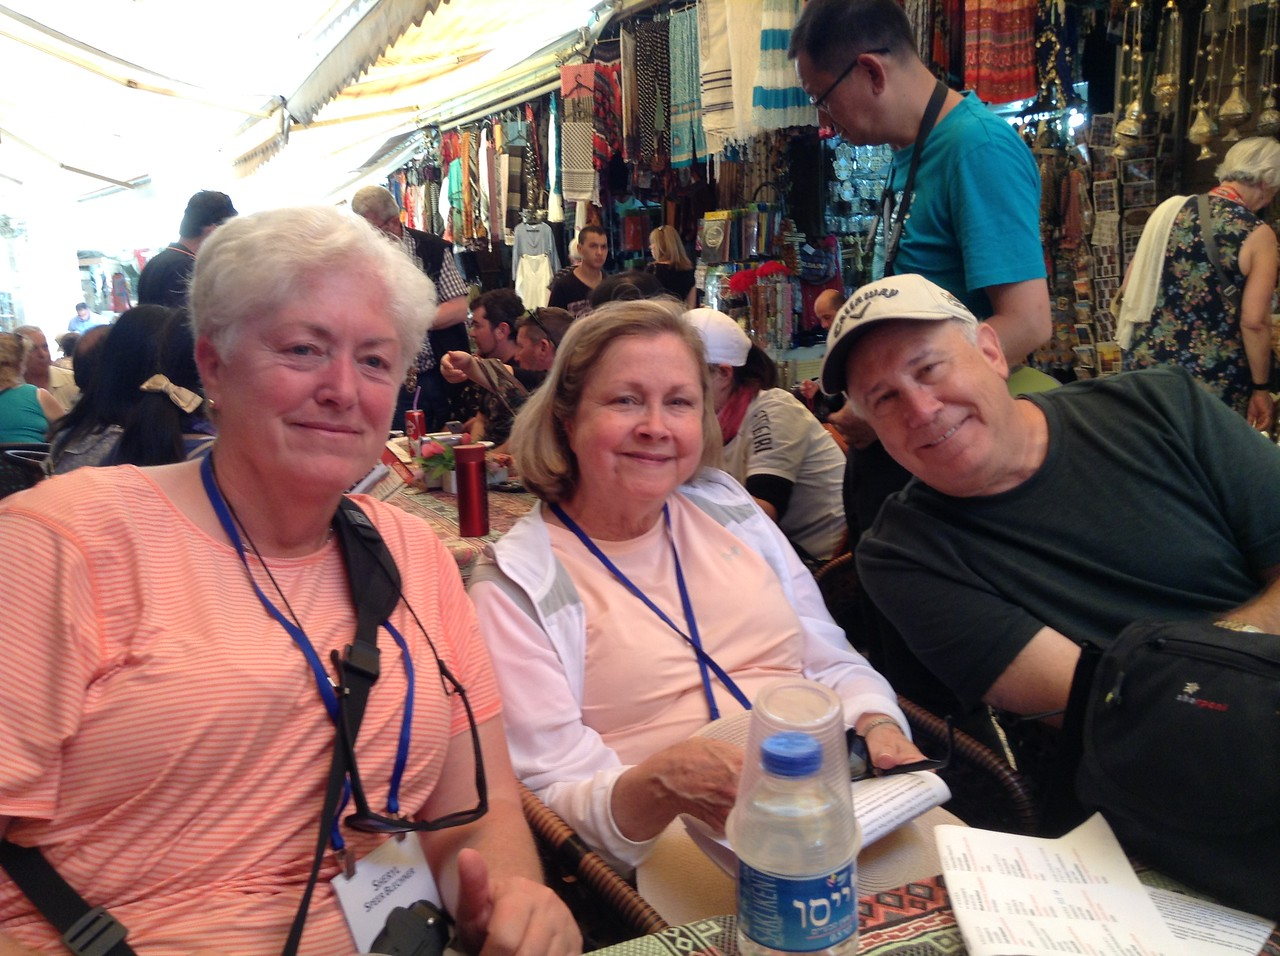 Sheryl Blechner, Wayna & Joe Dunn enjoying lunch in Christian Quarter of Old City.